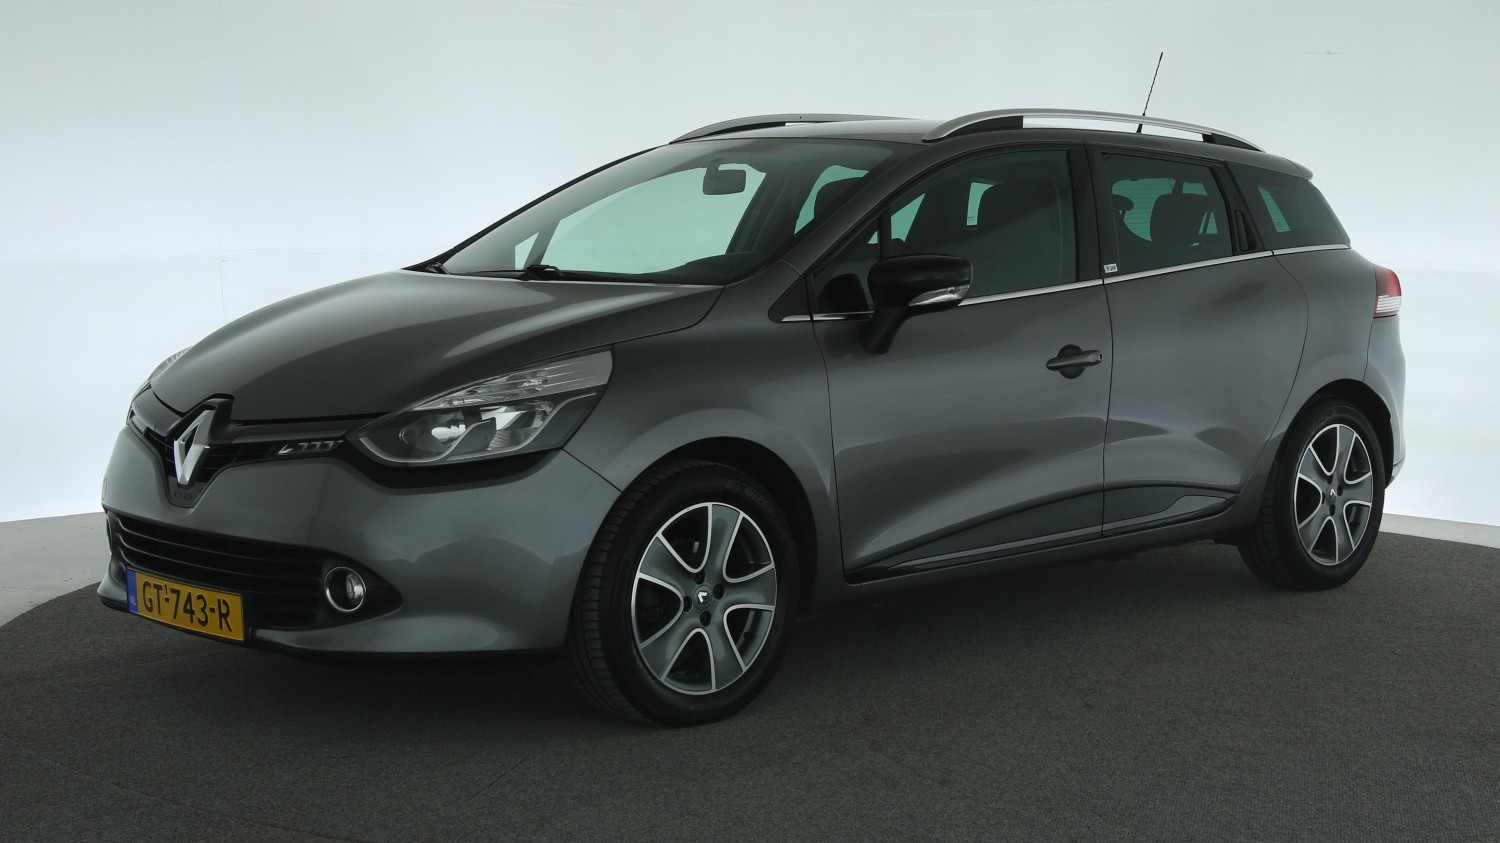 Renault Clio Station 2015 GT-743-R 1